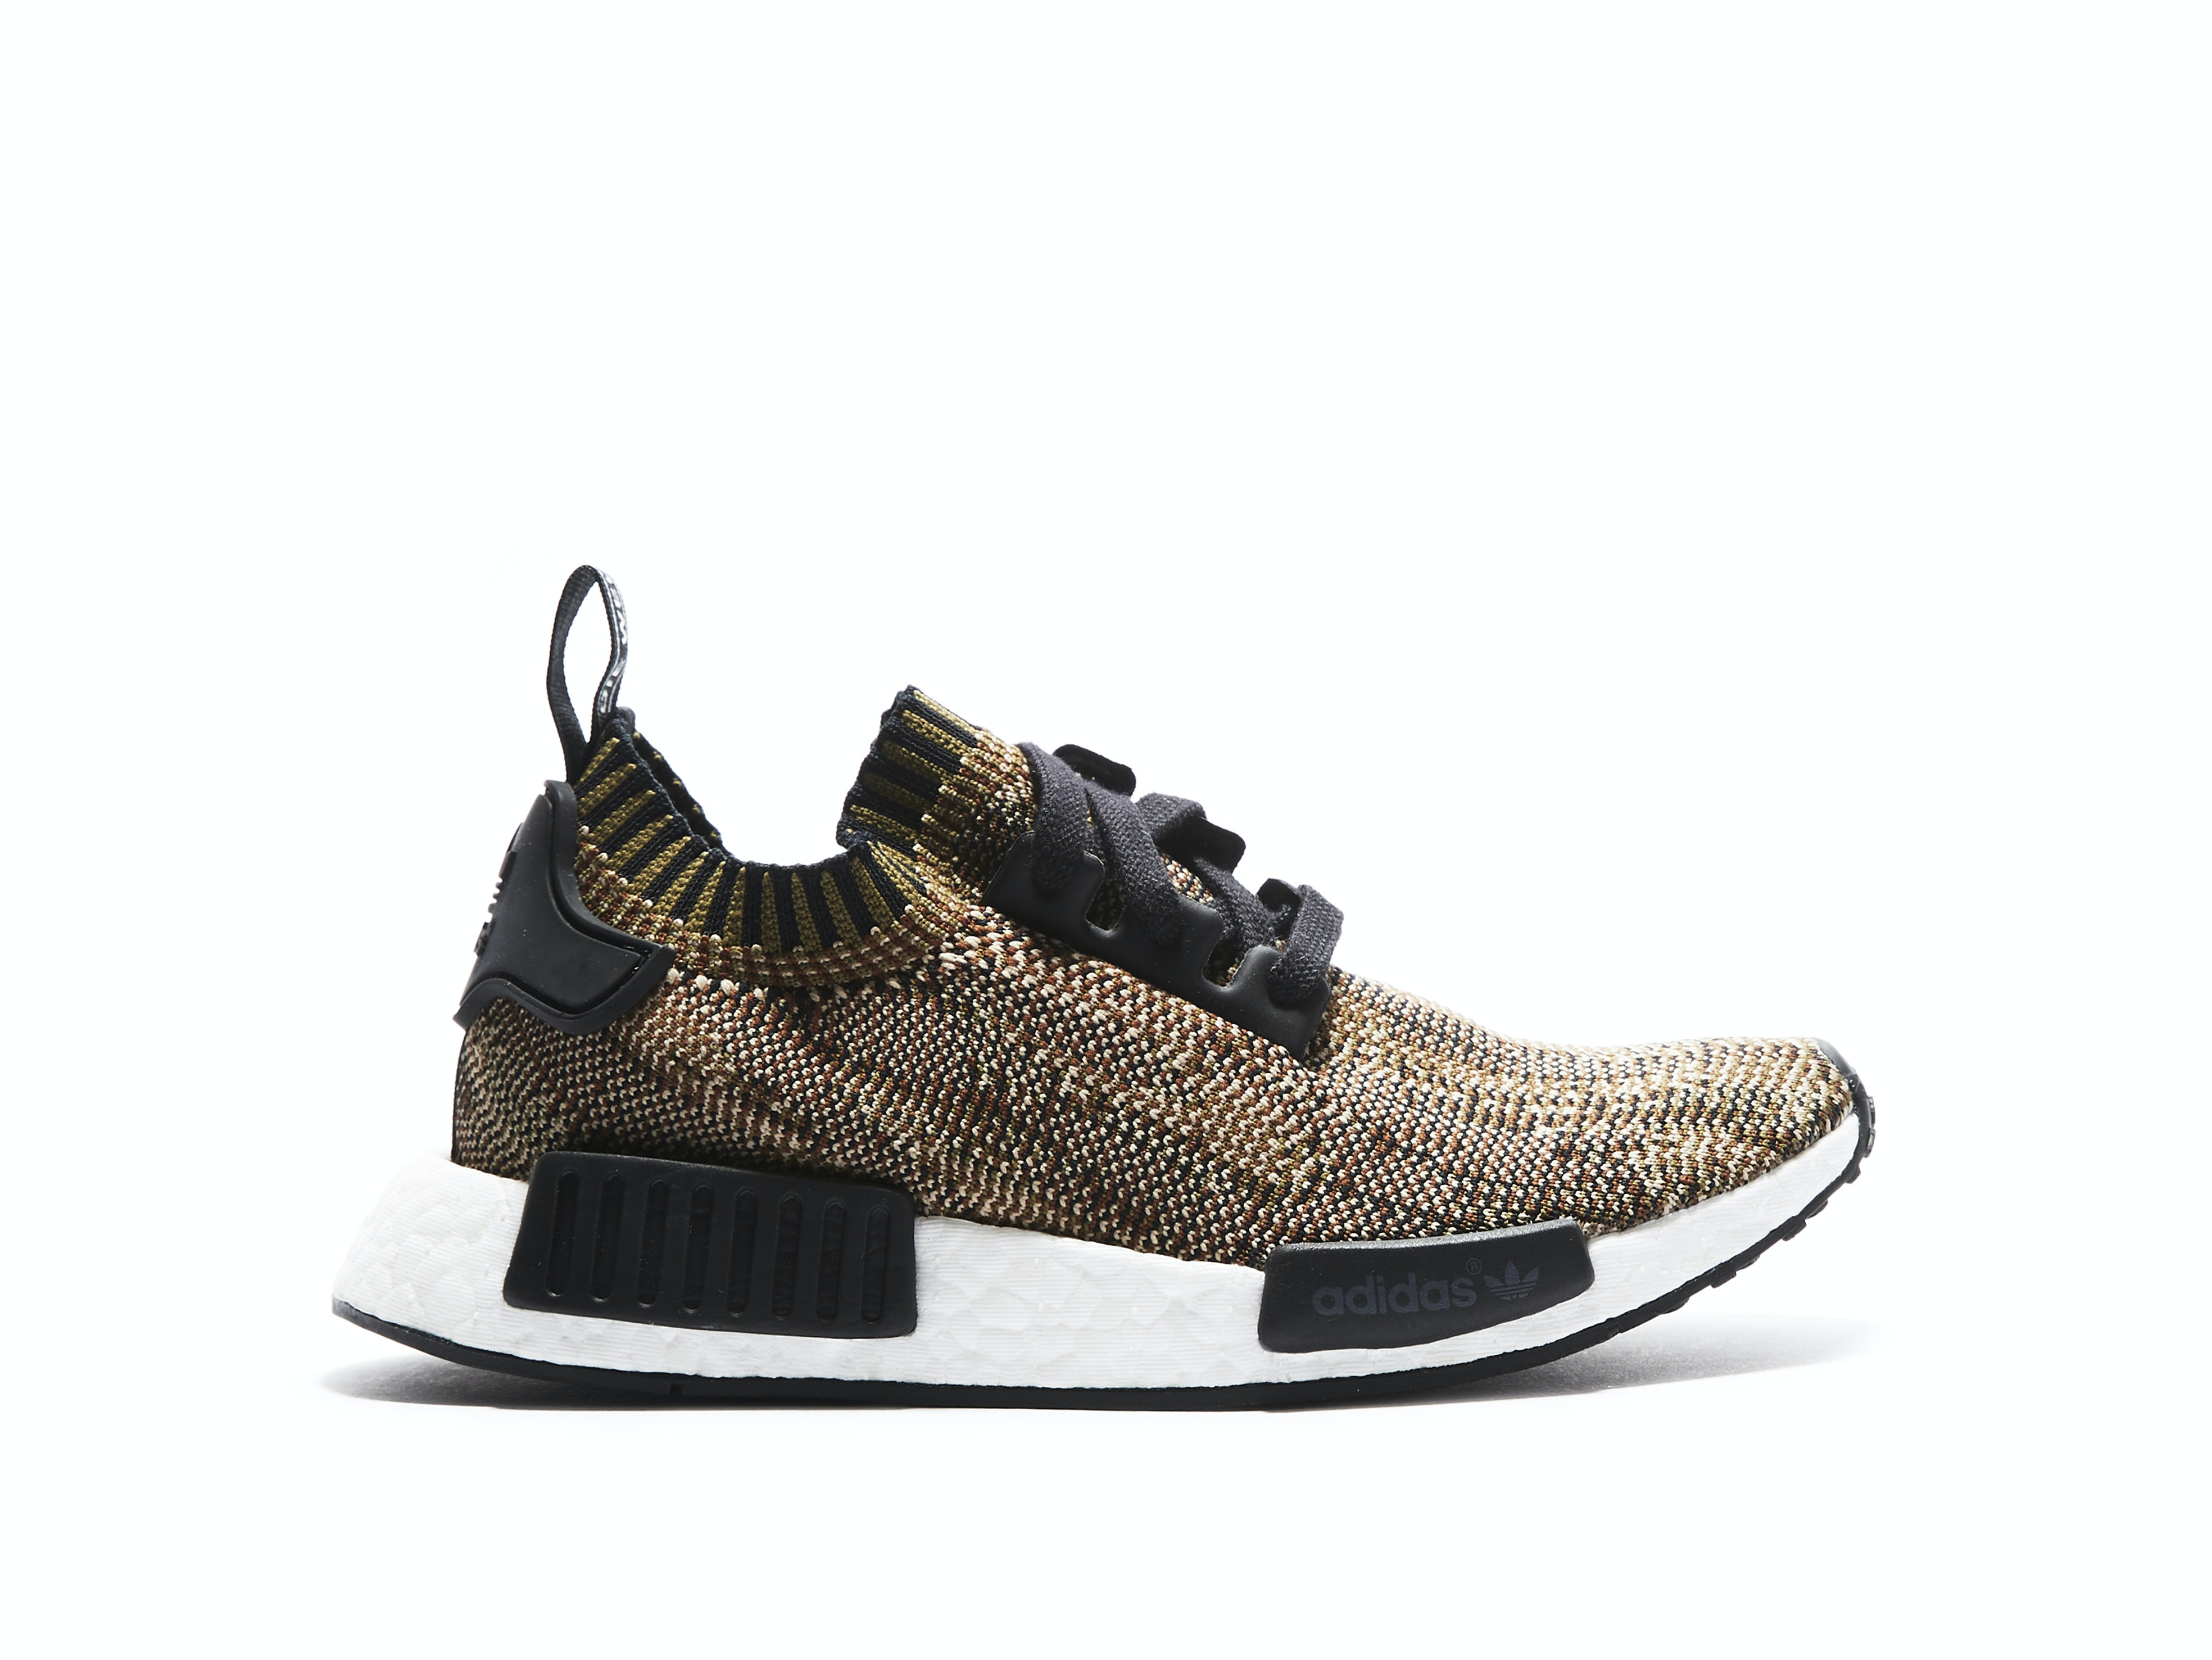 0c3e9cec8 Primeknit Olive Camo NMD R1. 100% AuthenticAvg Delivery Time  1-2 days.  Adidas   BA8597